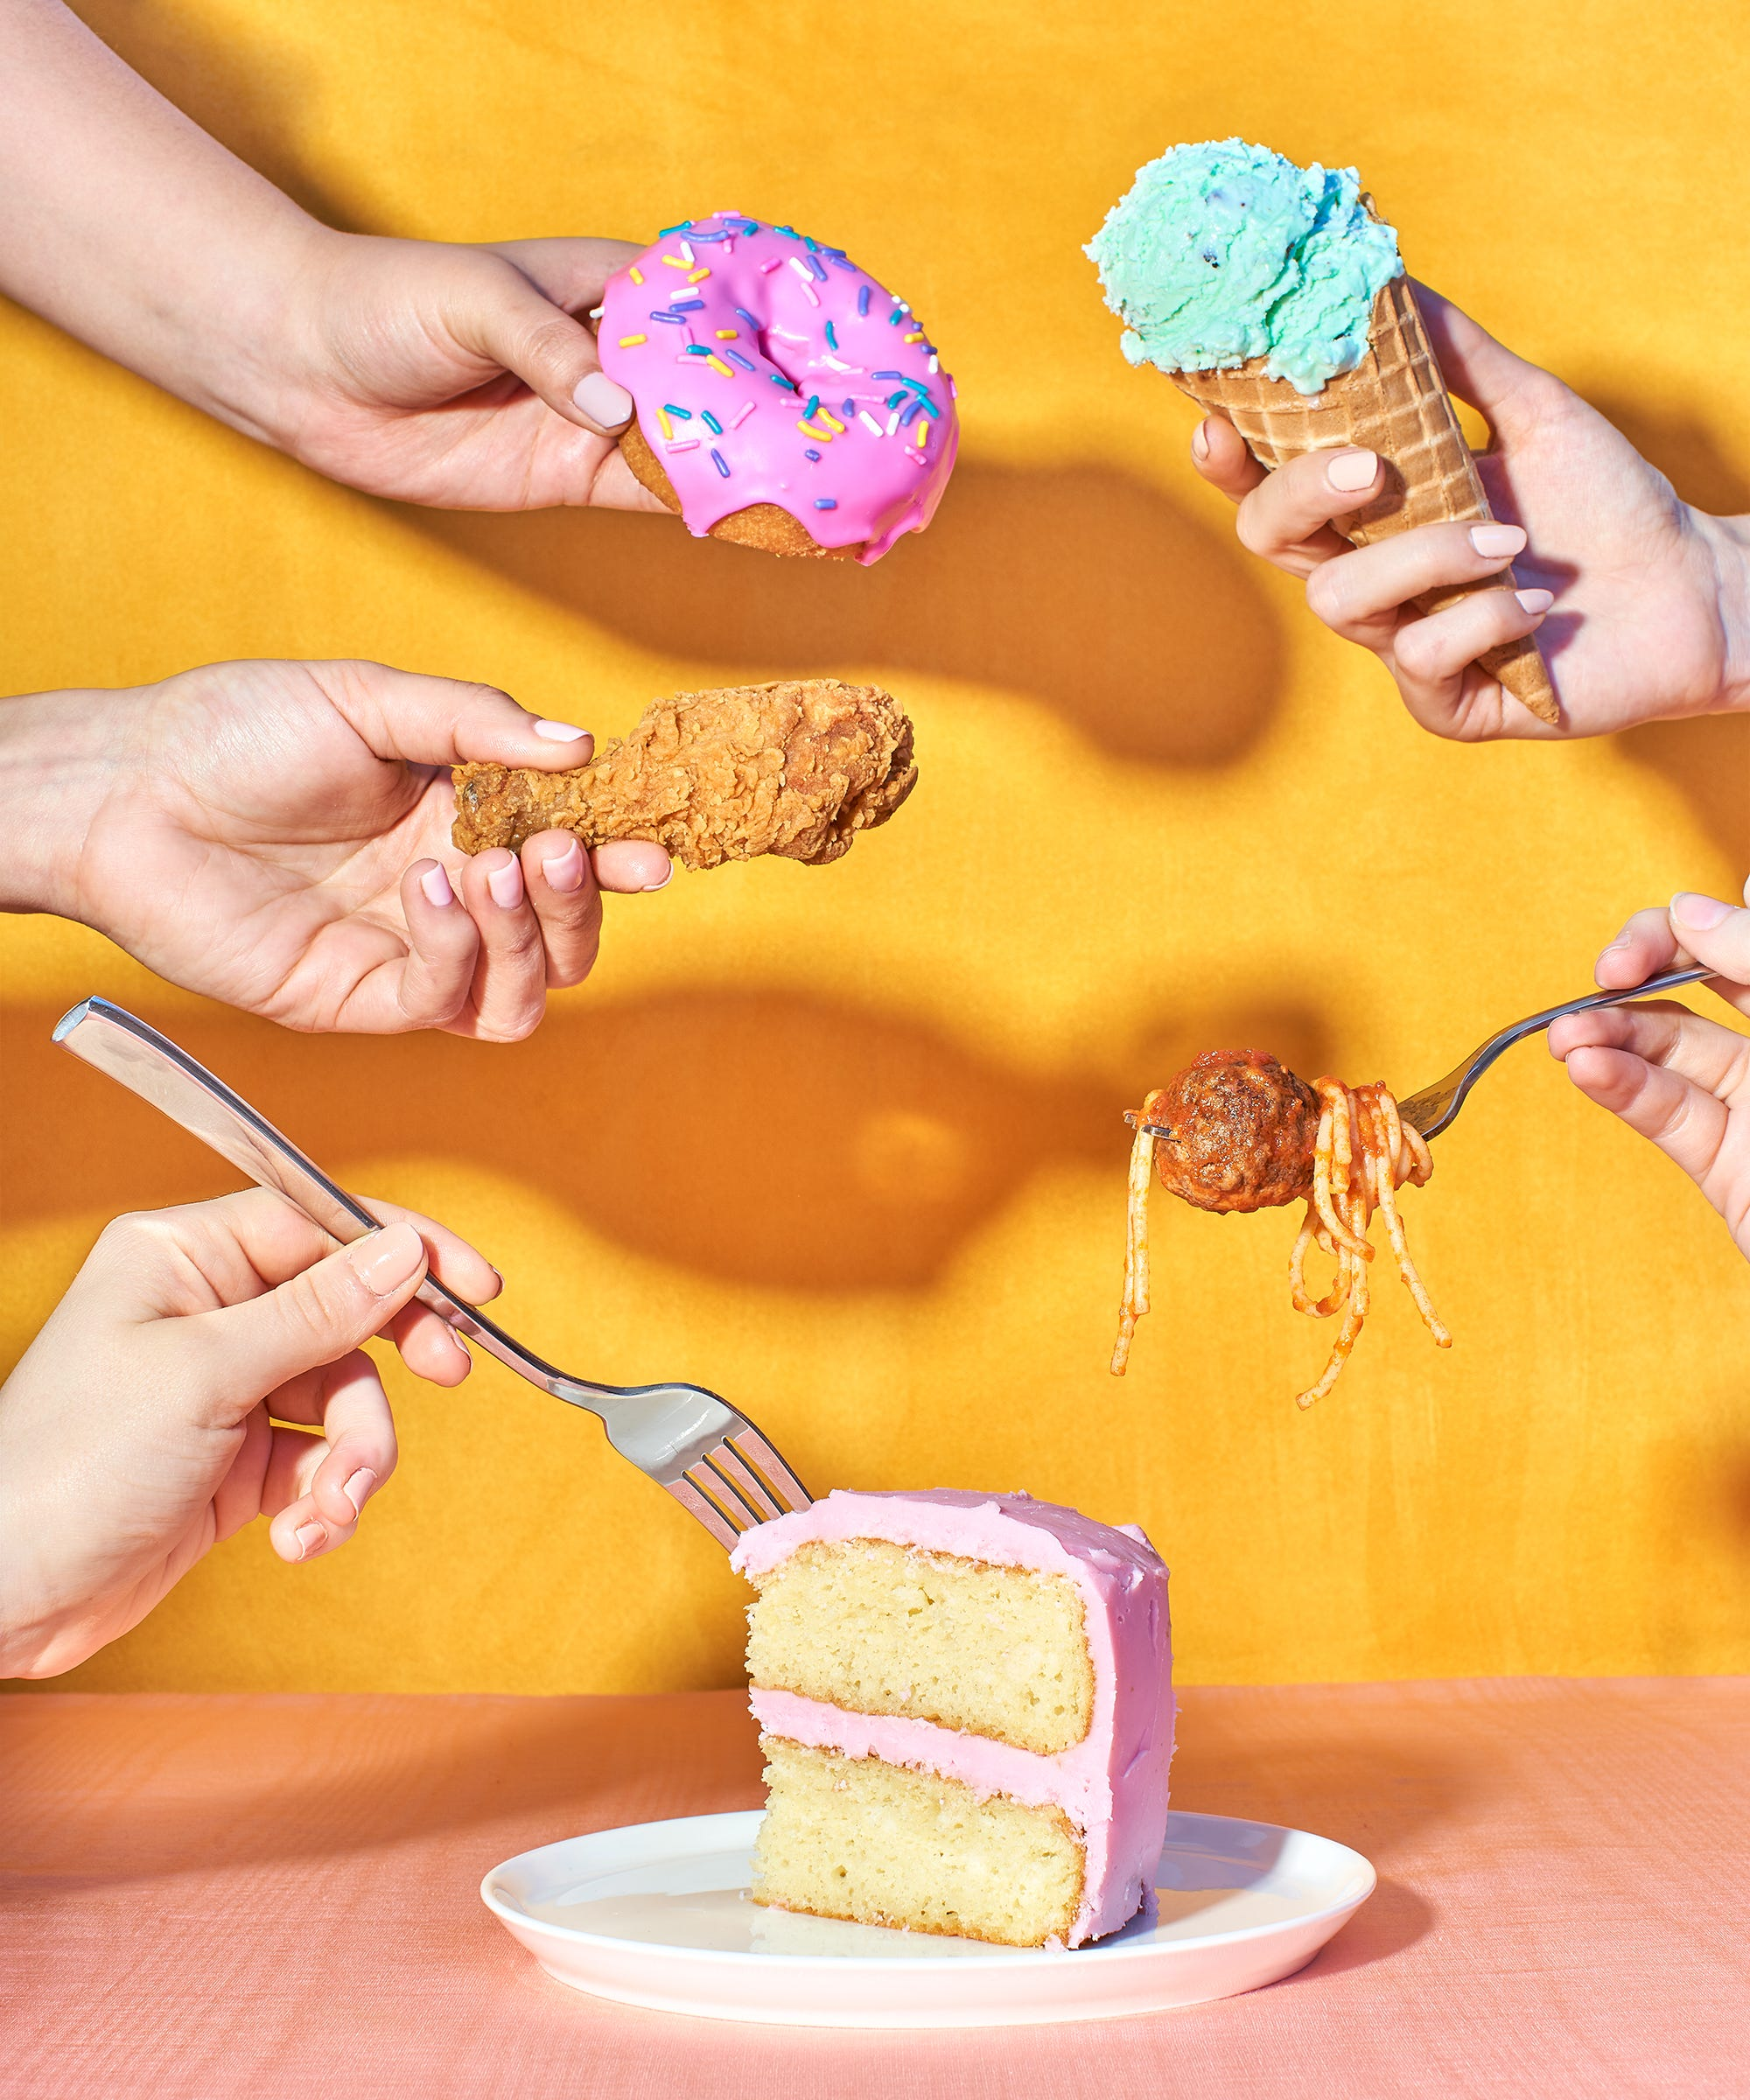 How To Eat Intuitively When Your Cravings Lead You To Donuts, Pasta & Cake